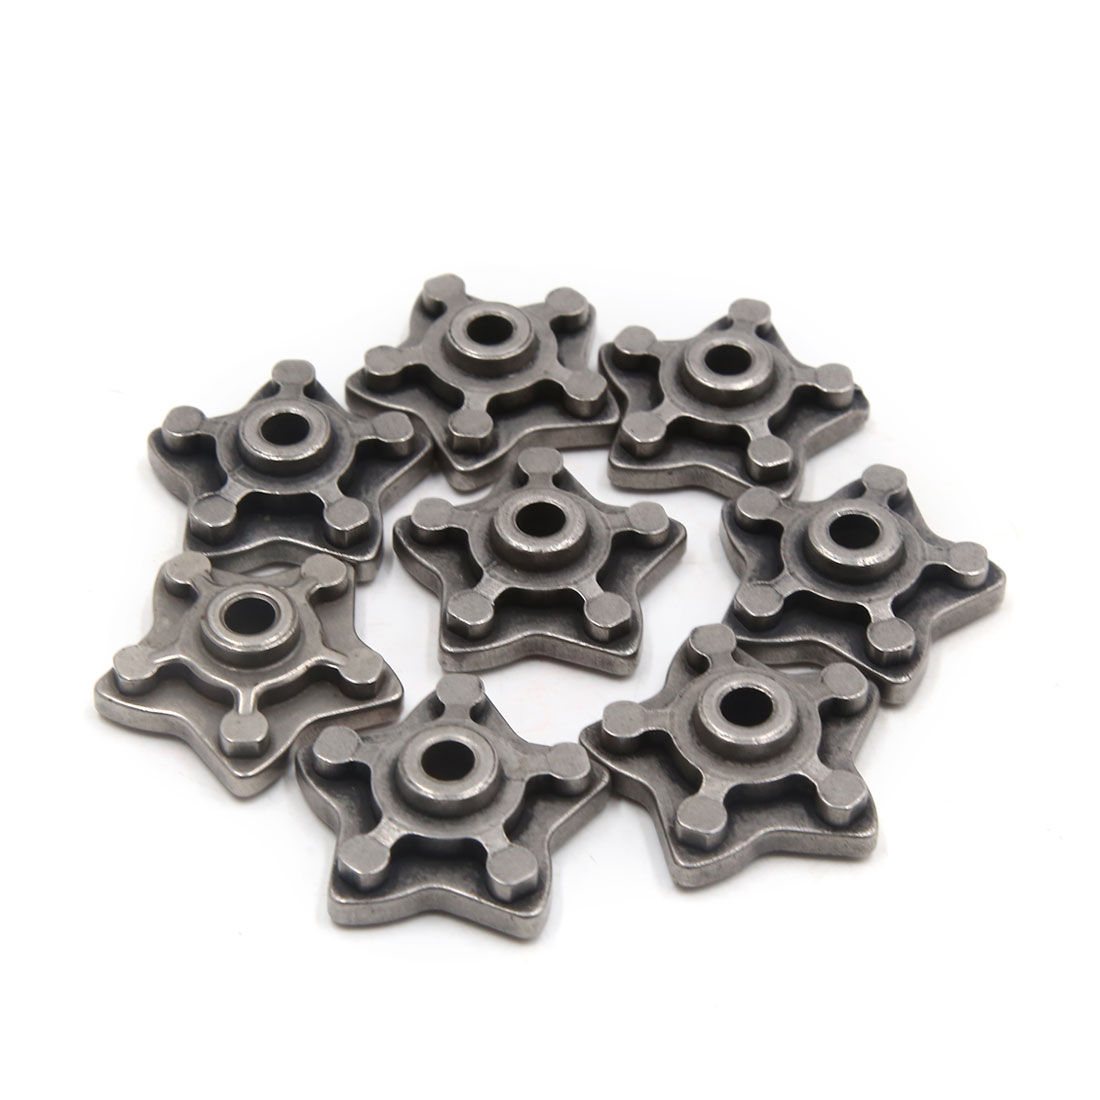 8 Pcs Gray Metal Star Shape Motorcycle Engine Speed Gear Shift Cam for CG125 - image 2 of 2